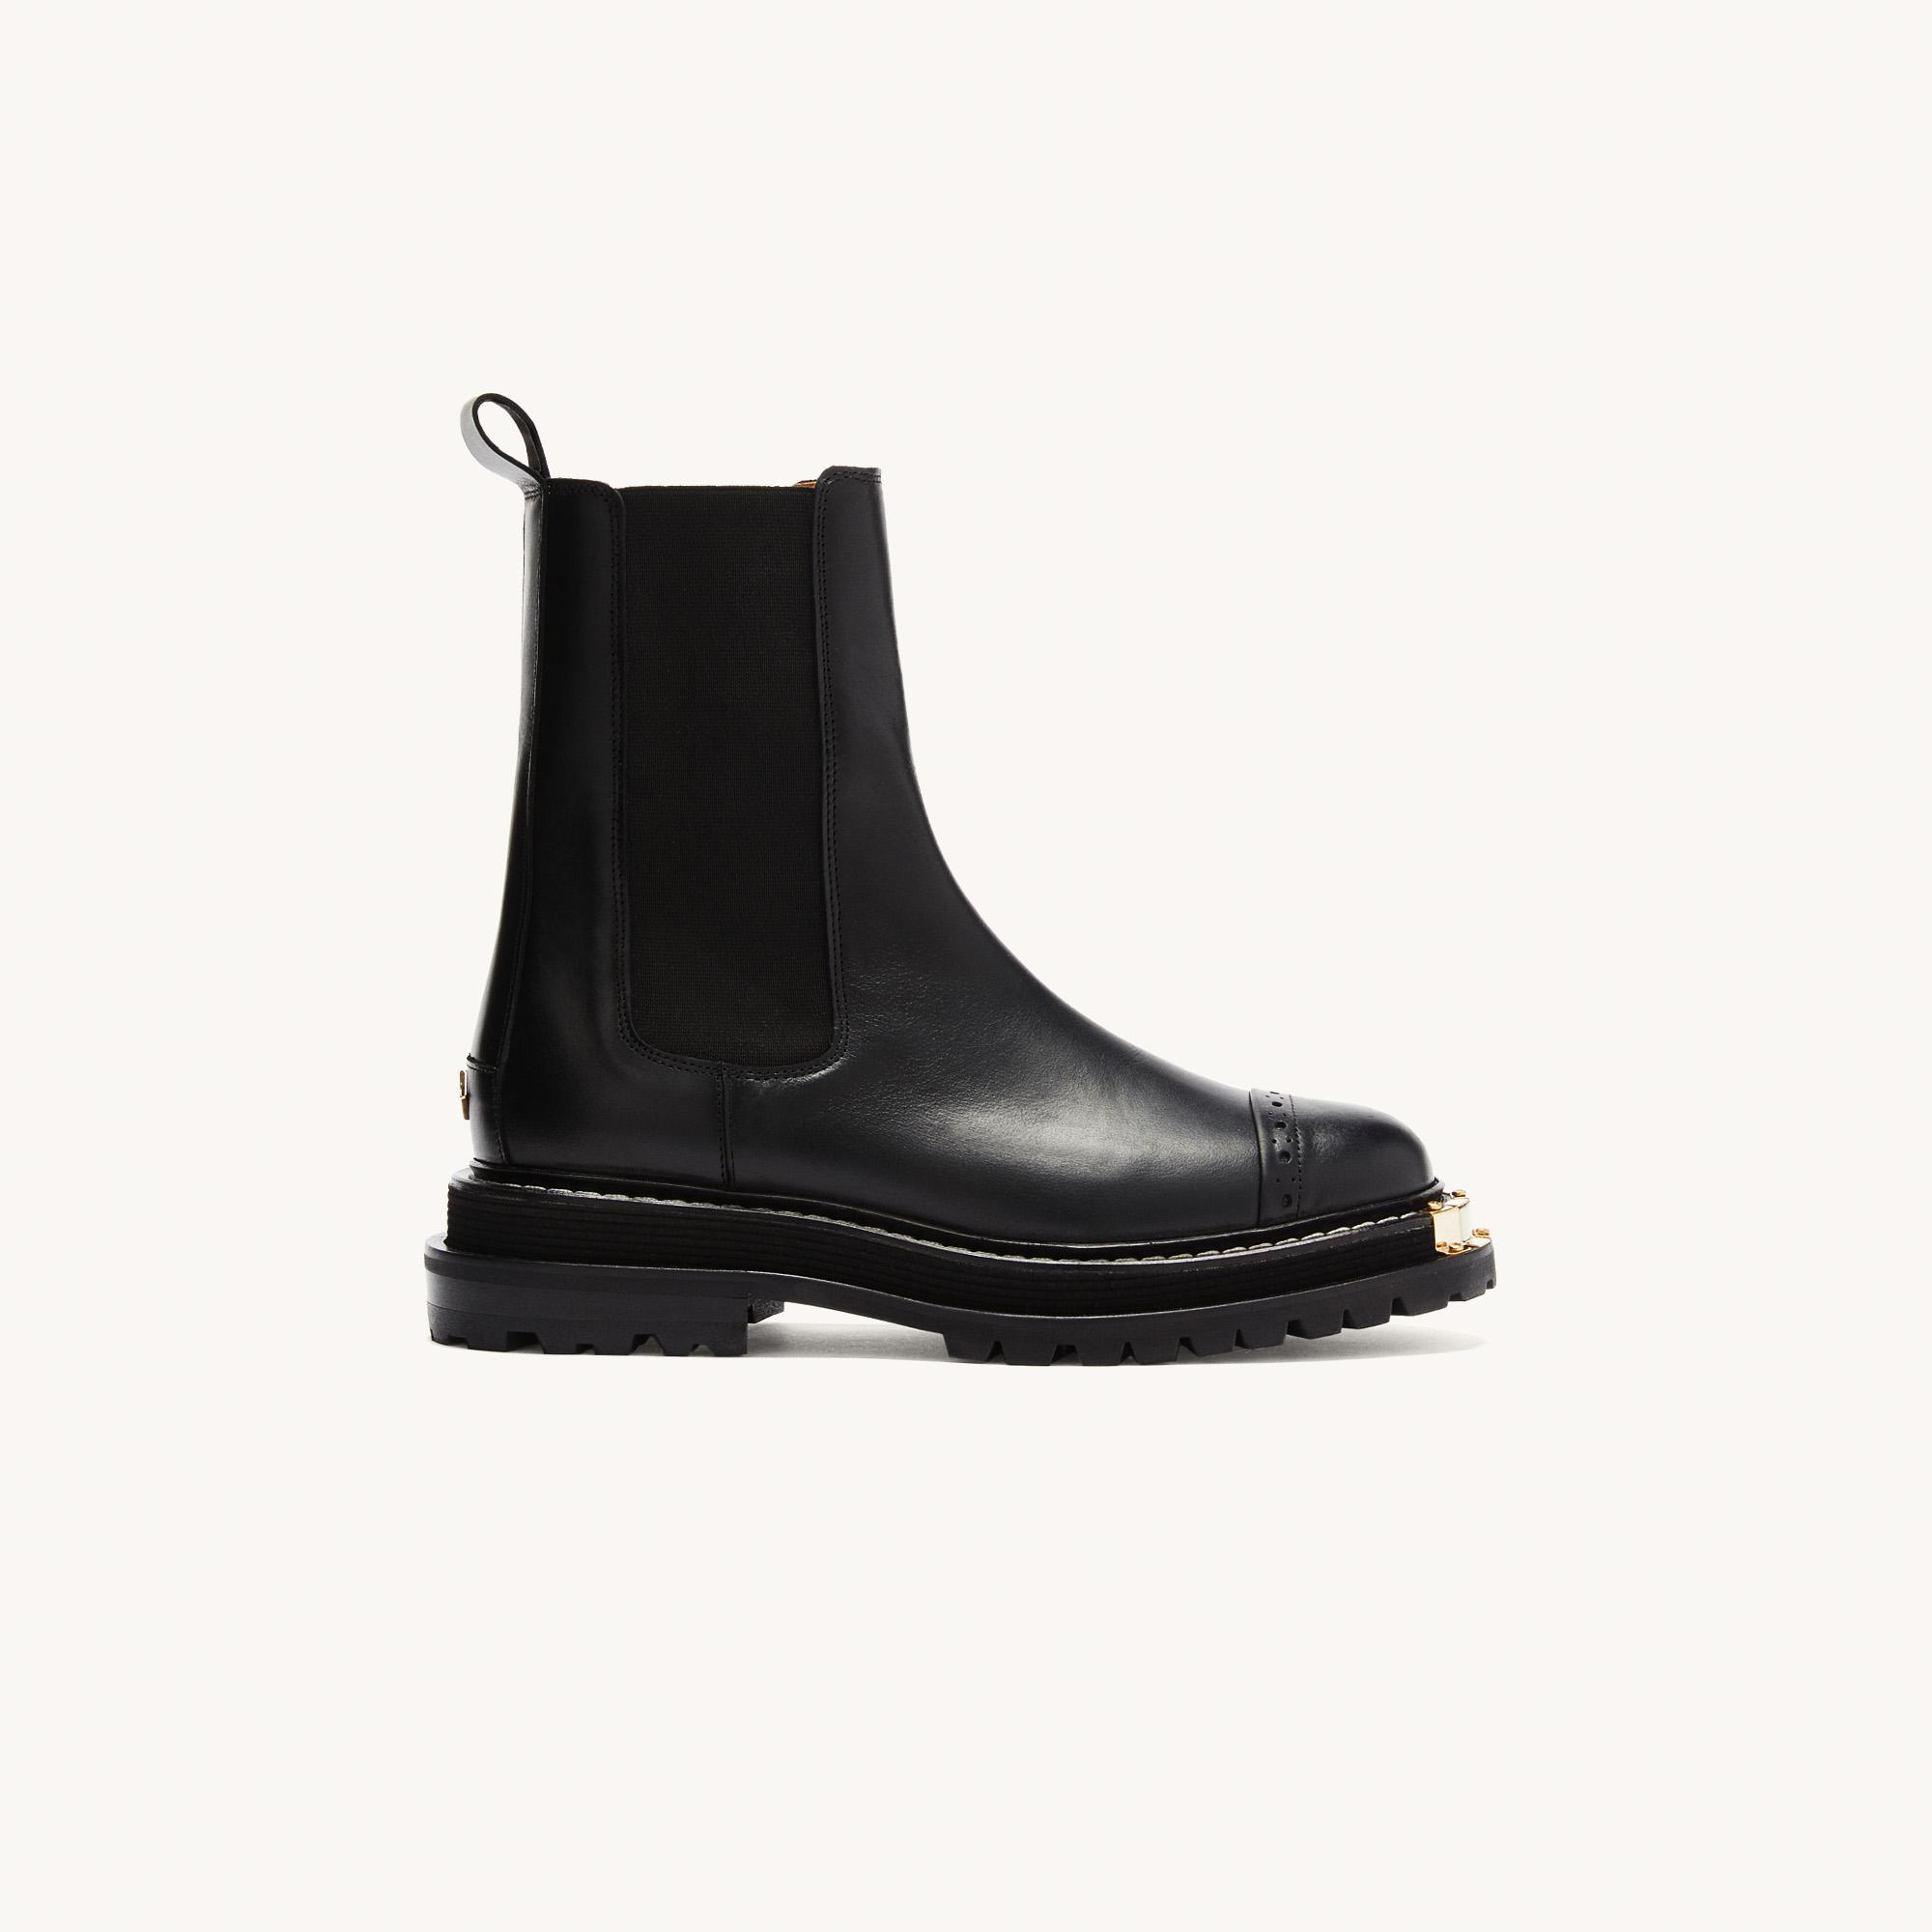 Ankle boots with notched sole